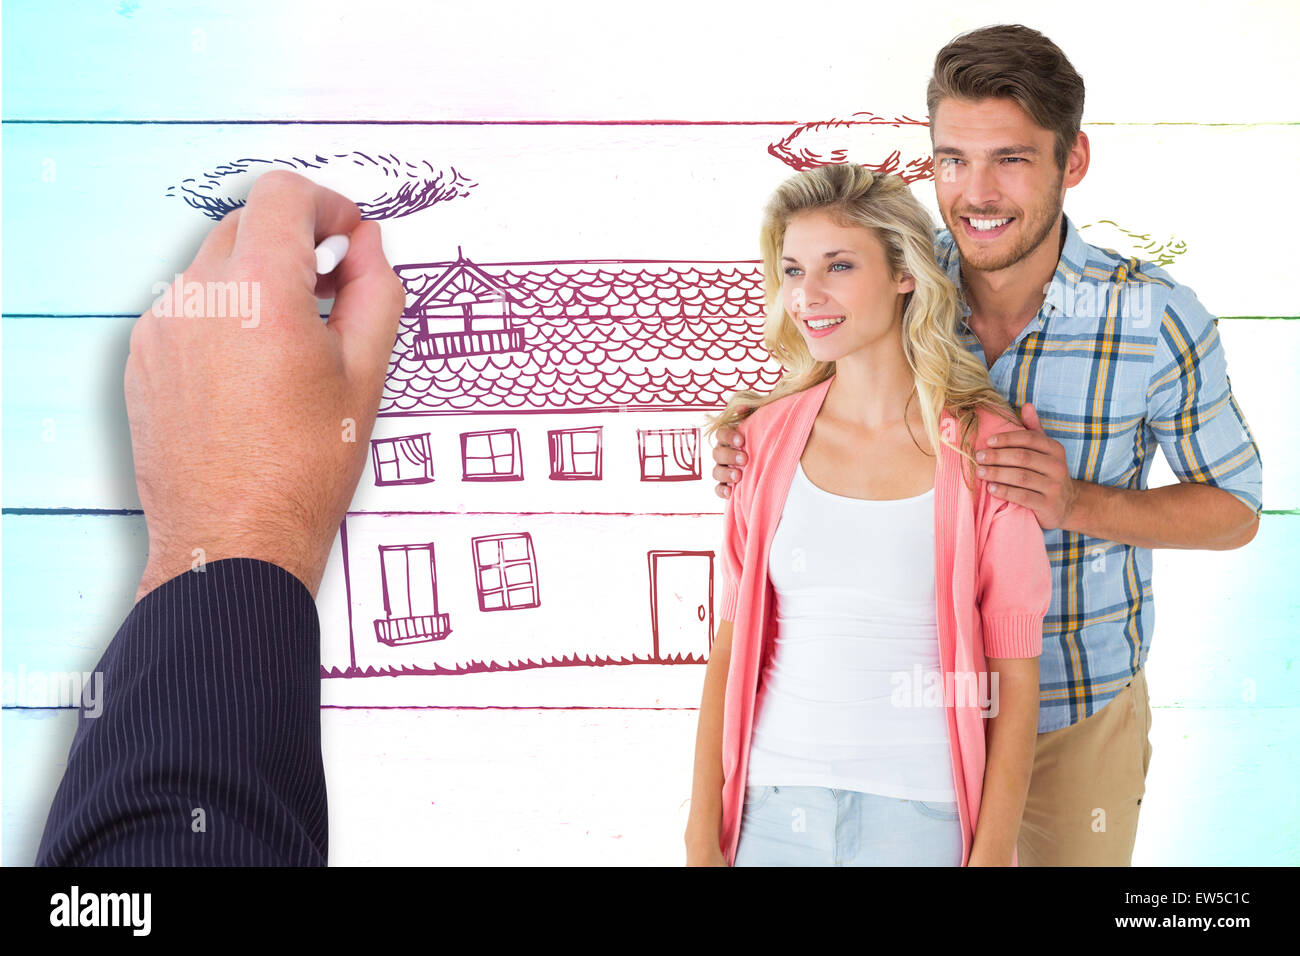 Composite image of attractive young couple smiling together - Stock Image